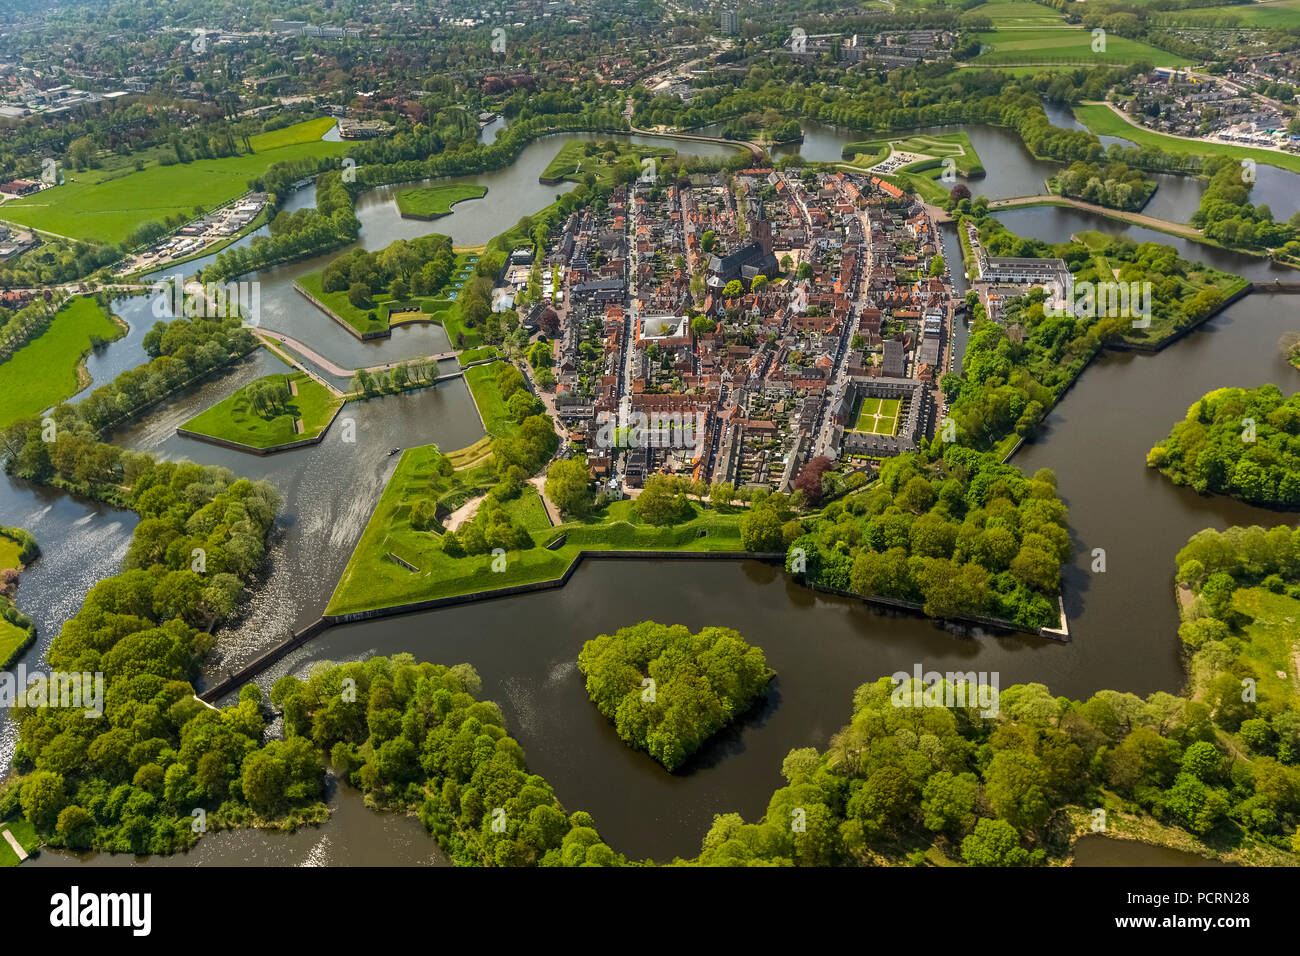 Bastion Oud Molen, NAARDEN VESTING, Fortress of Naarden with town house and church, Great Church or St. Vitus Church, medieval fortress, fortress town, North Holland, Naarden, North Holland, Netherlands - Stock Image